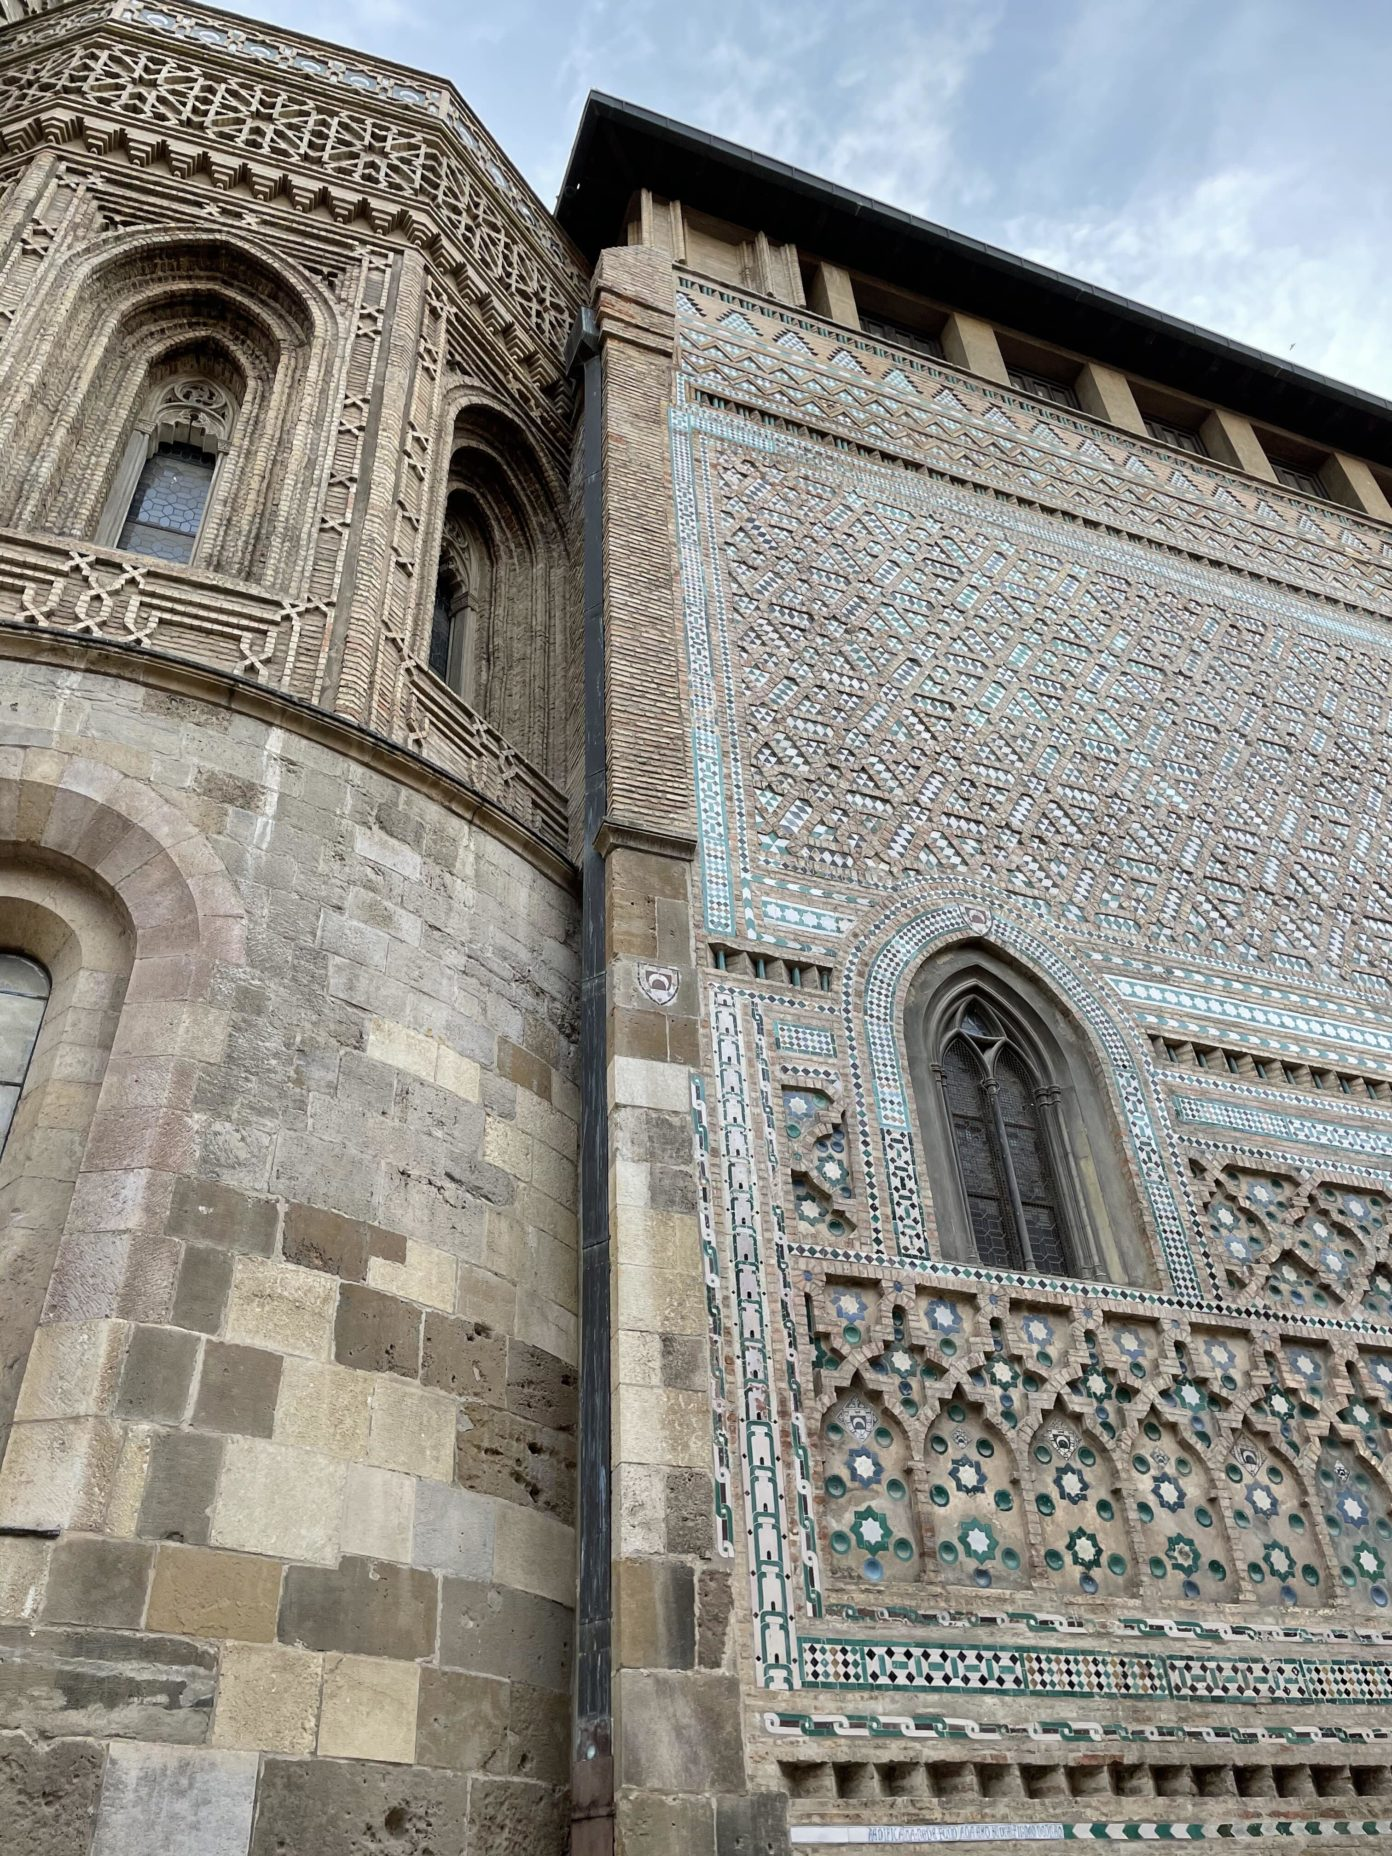 The wall of the Parroquieta de San Miguel Arcángel annexed to the Seo is one of the culminating works of Mudejar architecture. (Go Aragon)